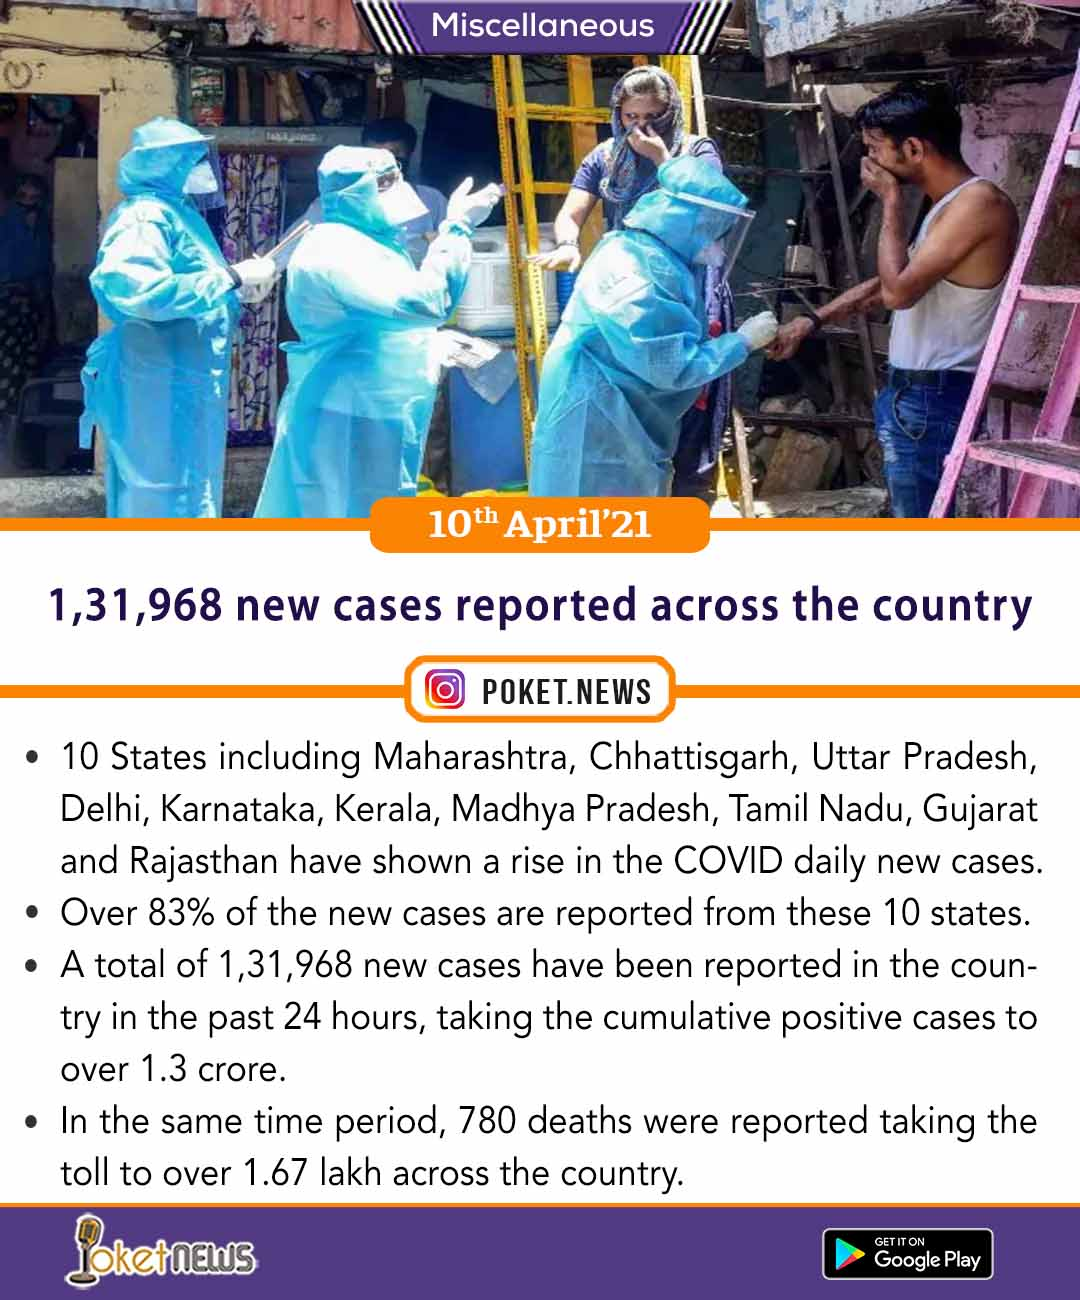 1,31,968 new cases reported across the country